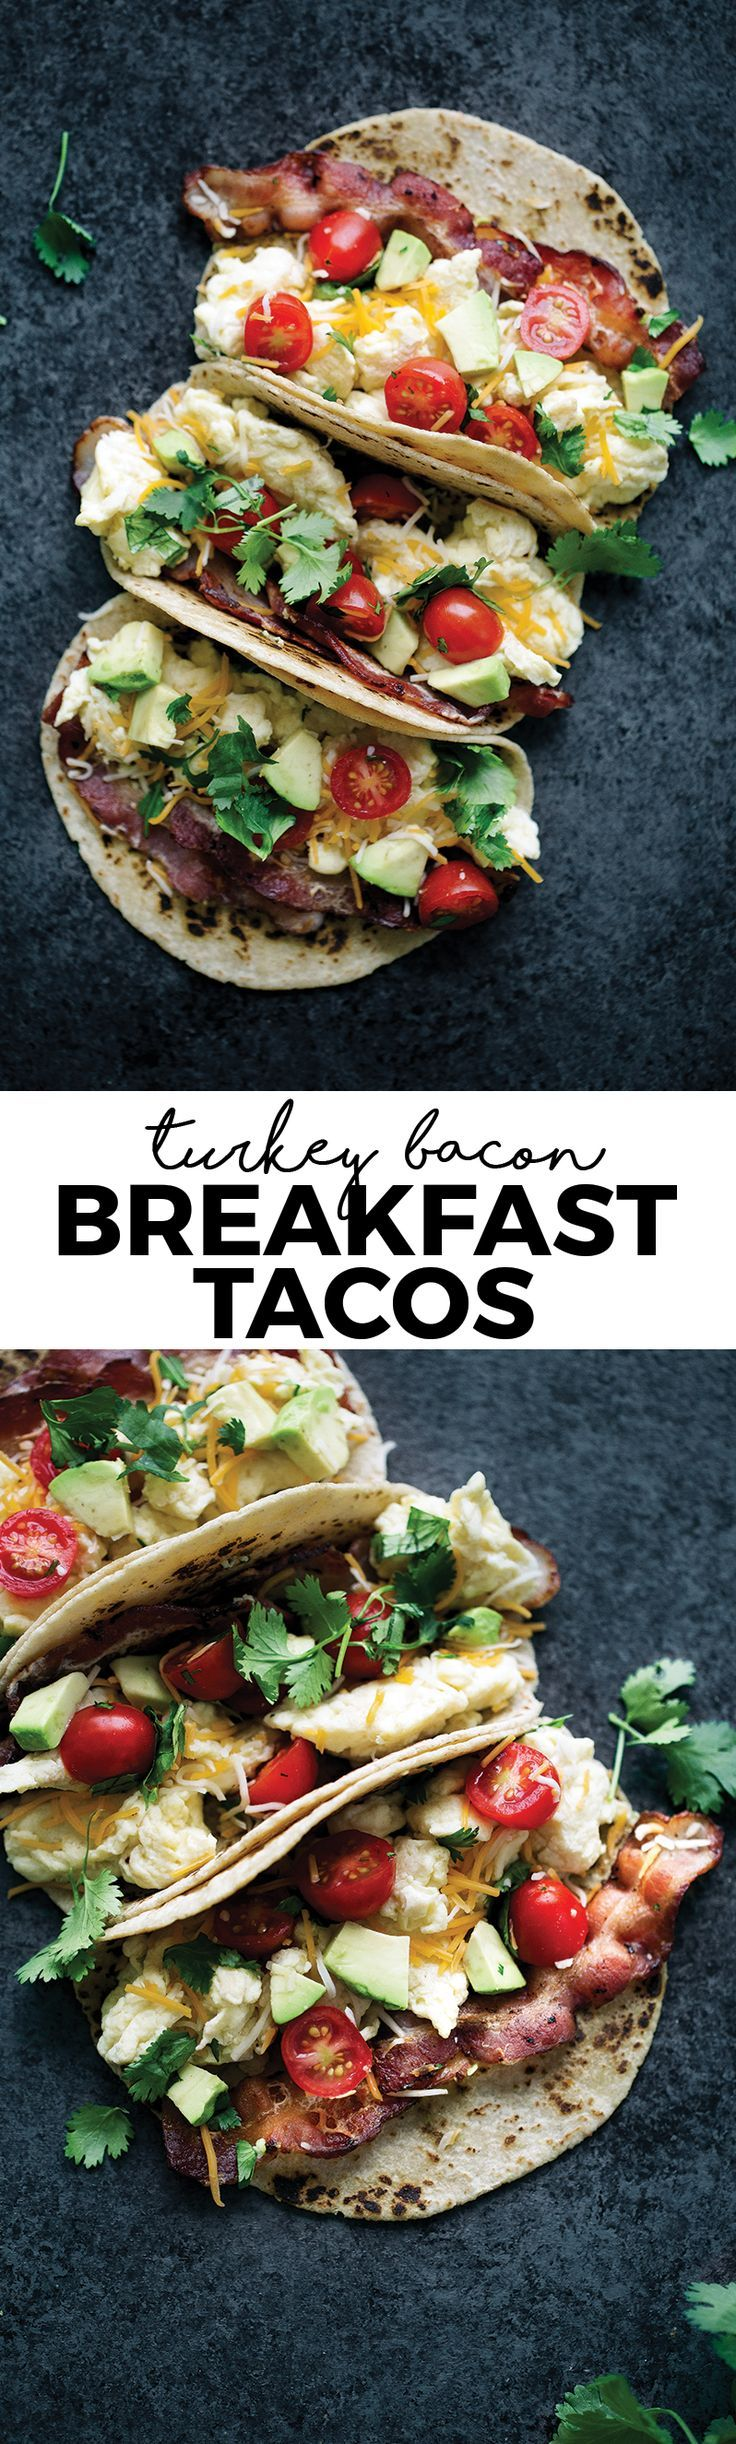 These turkey bacon and egg breakfast tacos will keep you satisfyingly full all morning. Try topping them with sliced avocado and cilantro!